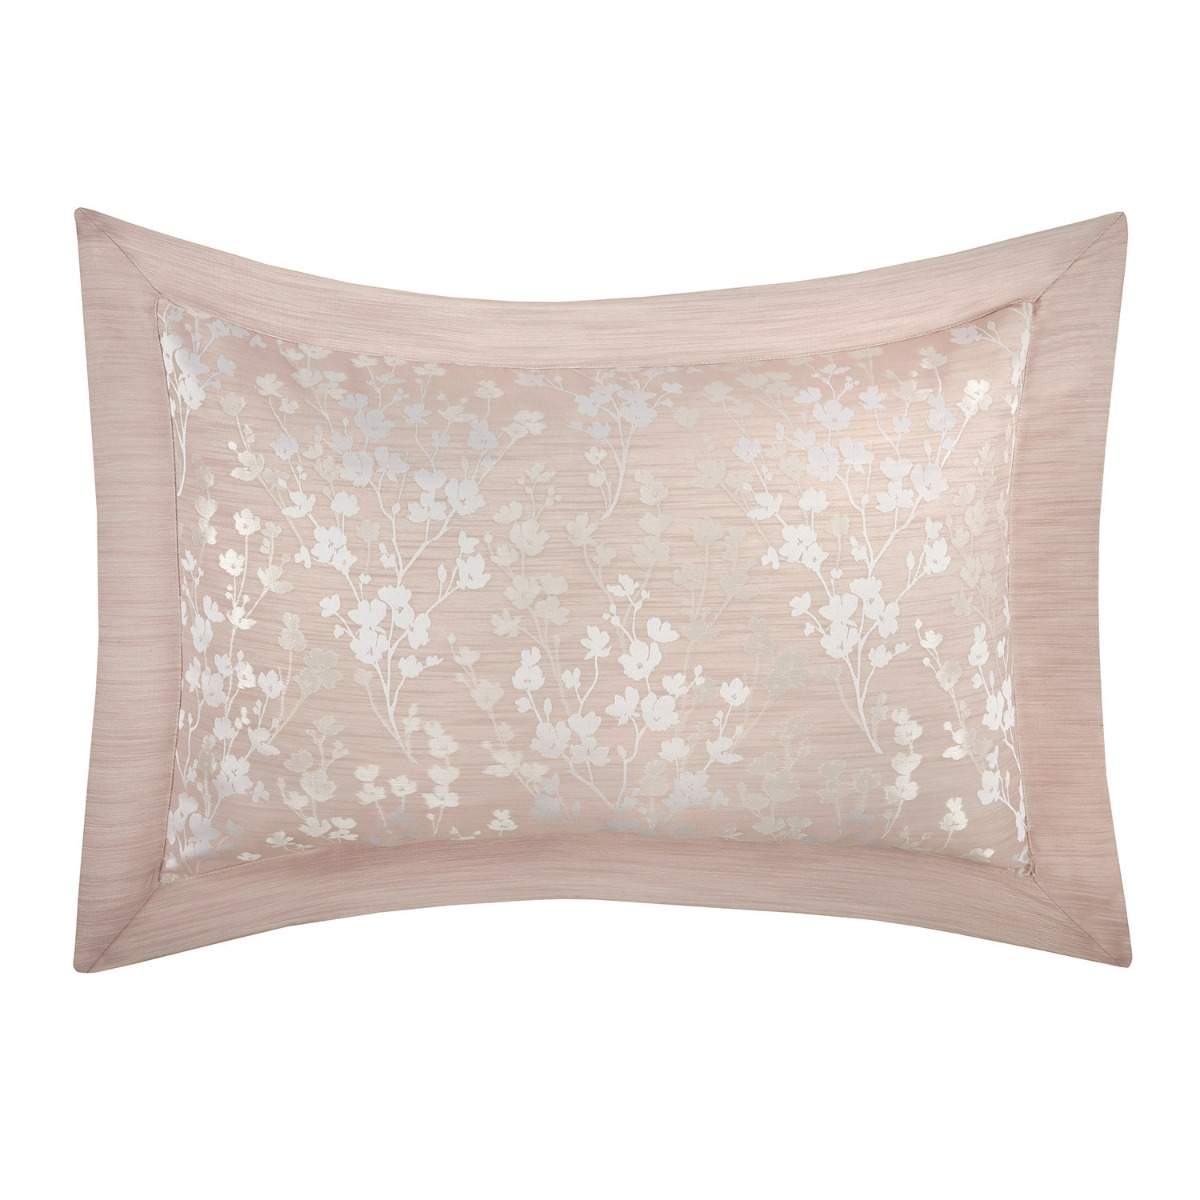 Blossom Pink Floral Jacquard Oxford Pillowcases (Pair)